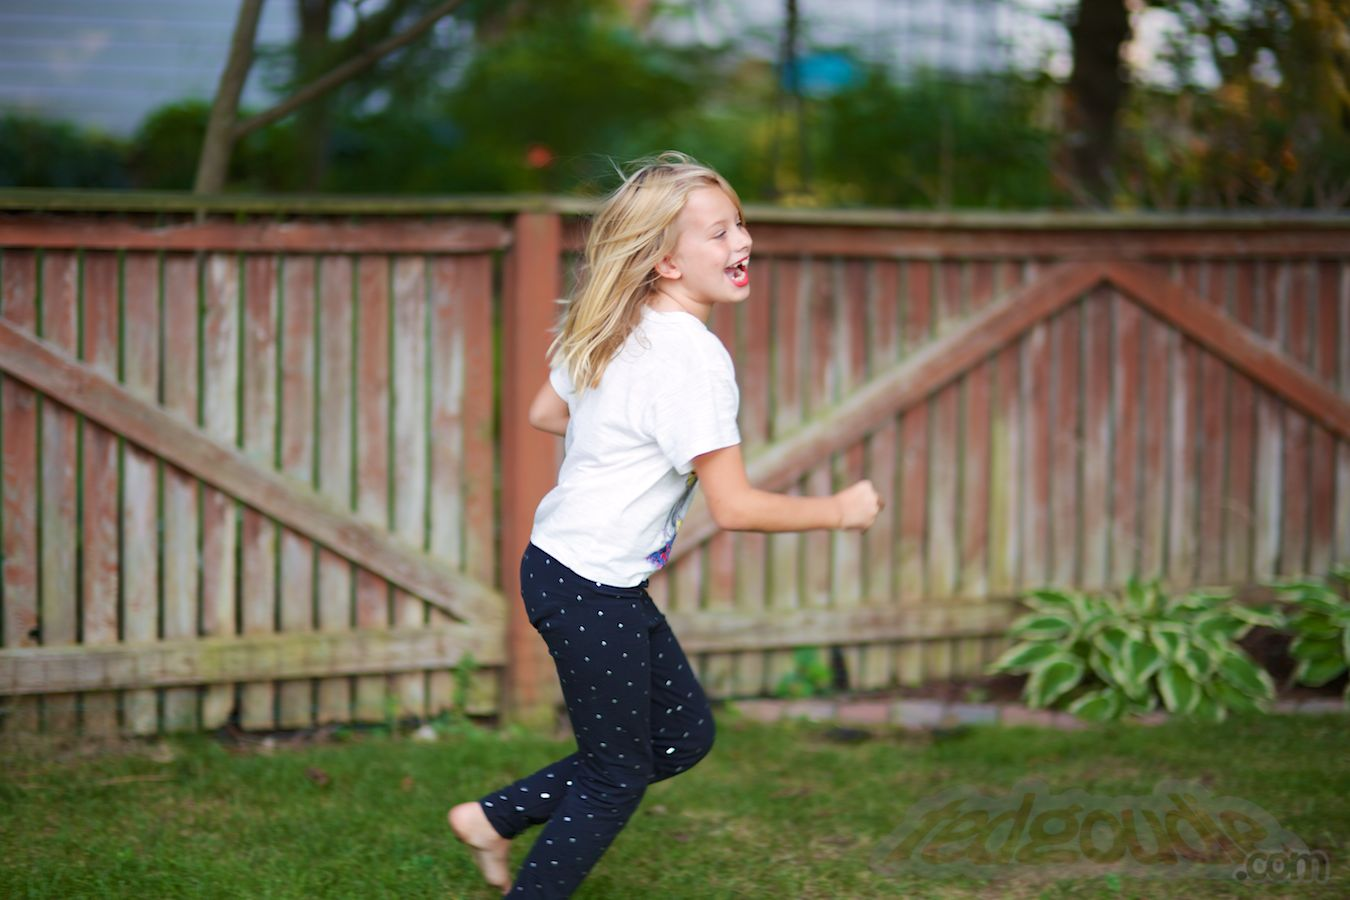 Backyard Fun August 2014